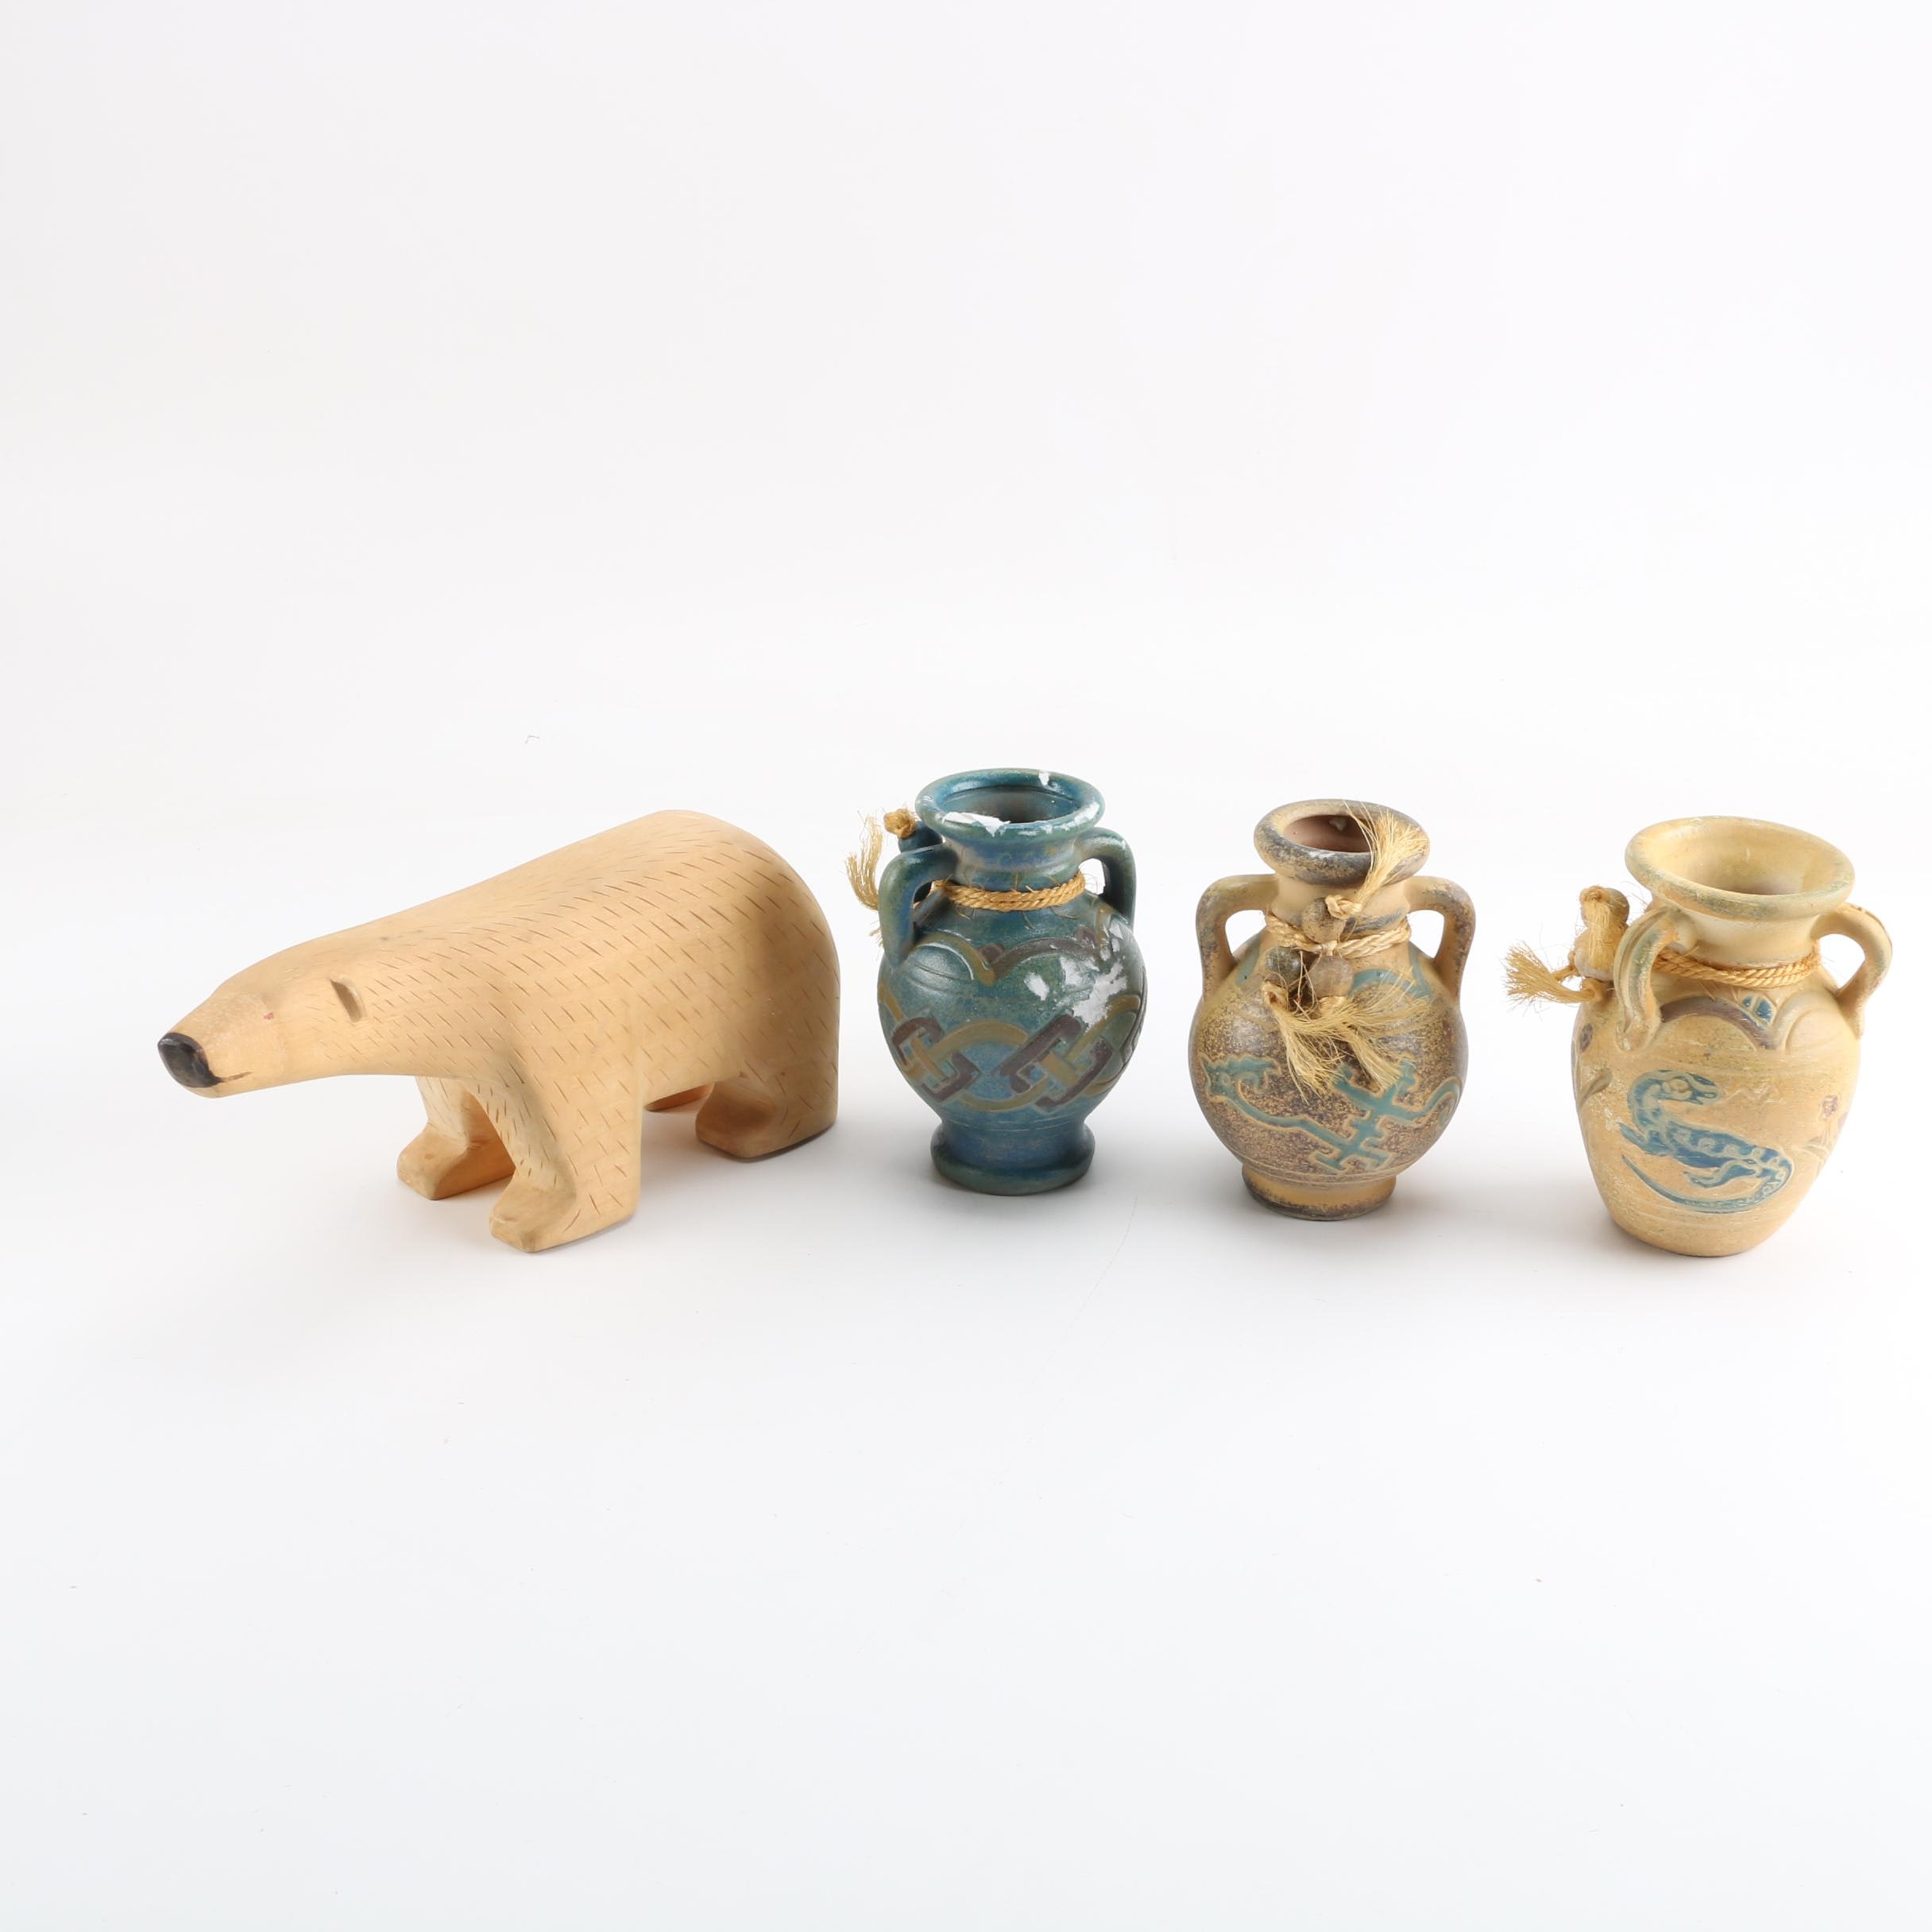 Southwestern-Style Miniature Pottery Vases with Carved Wood Polar Bear Figurine